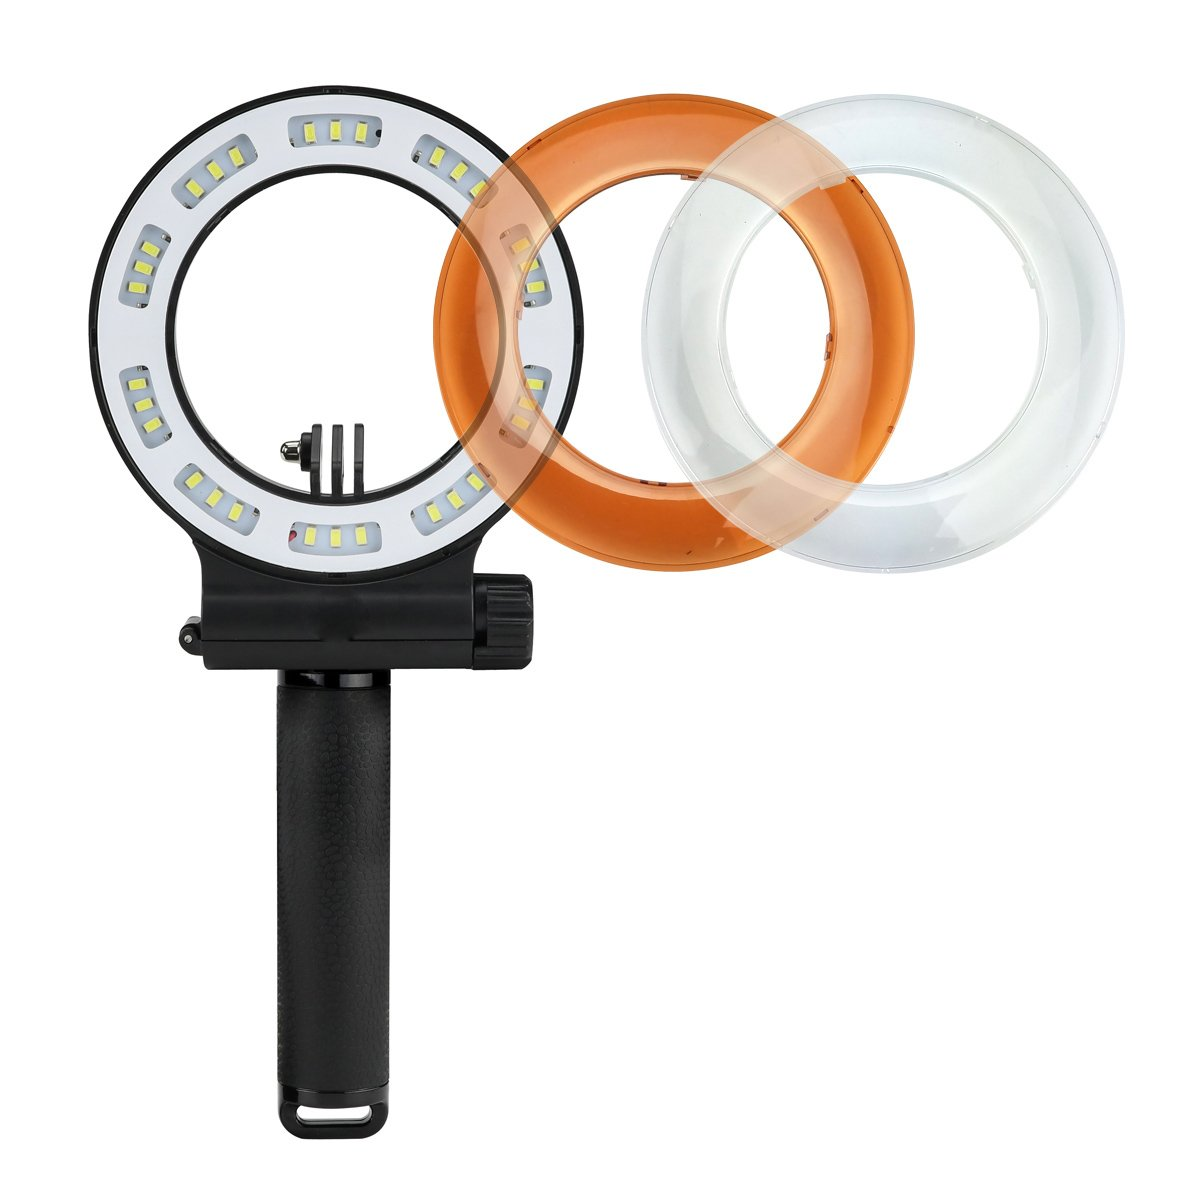 MEIKON LED Underwater Light, Waterproof 40m Diving Fill Light IPX8 Waterproof Flash Ring Light 3 Modes with 30pcs LED for GoPro Hero 6/5/4/3 /3/2/1 SJCAM and Other Action Camera (Rechargeable) by MEIKON